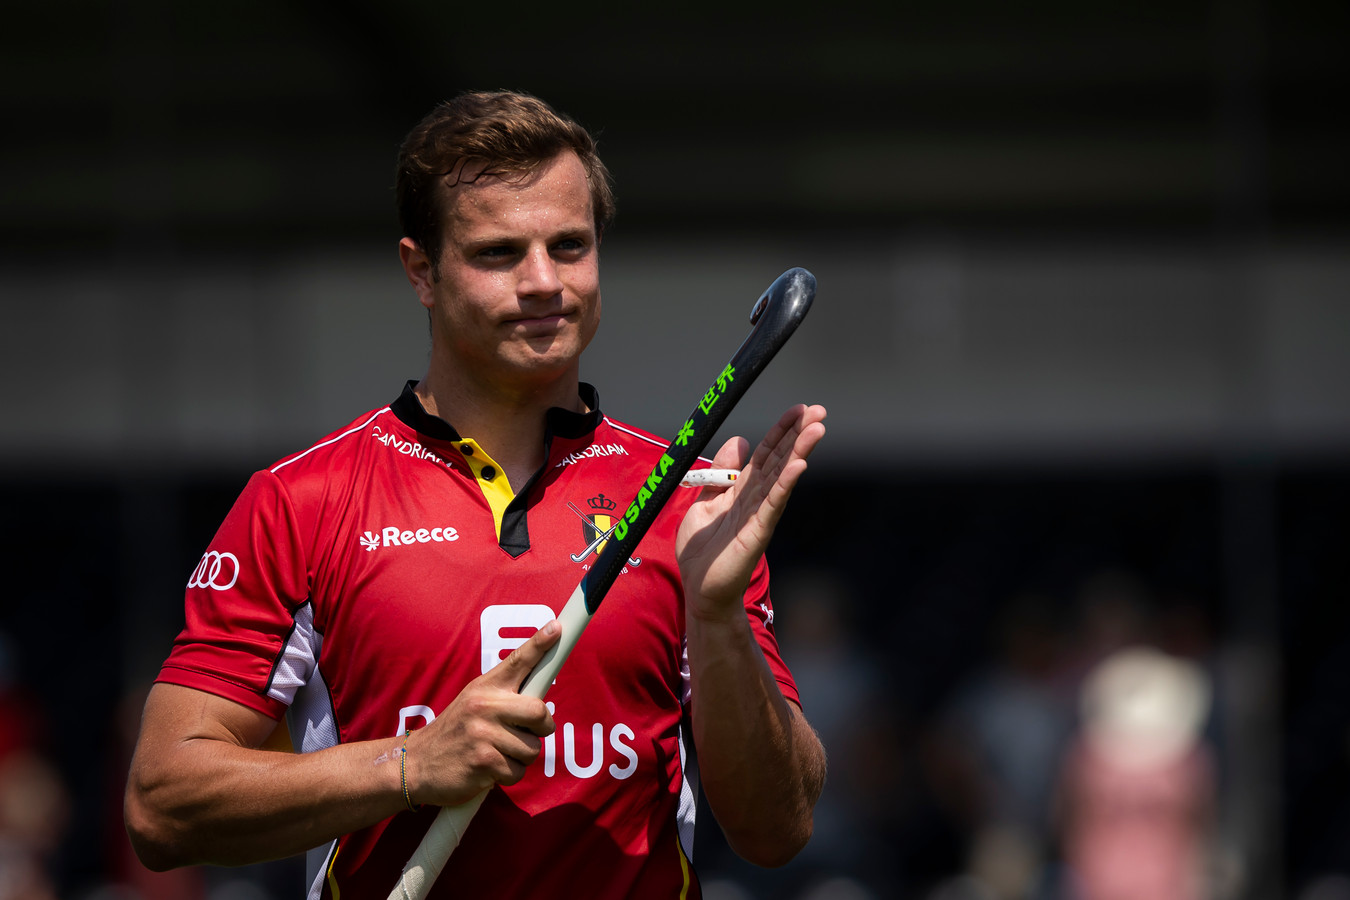 Belgium's Maxime Plennevaux pictured after a field hockey game between Belgium's national team Red Lions and Argentina, Sunday 23 June 2019 in Wilrijk, Antwerp, game 14/14 of the men's FIH Pro League competition. BELGA PHOTO KRISTOF VAN ACCOM